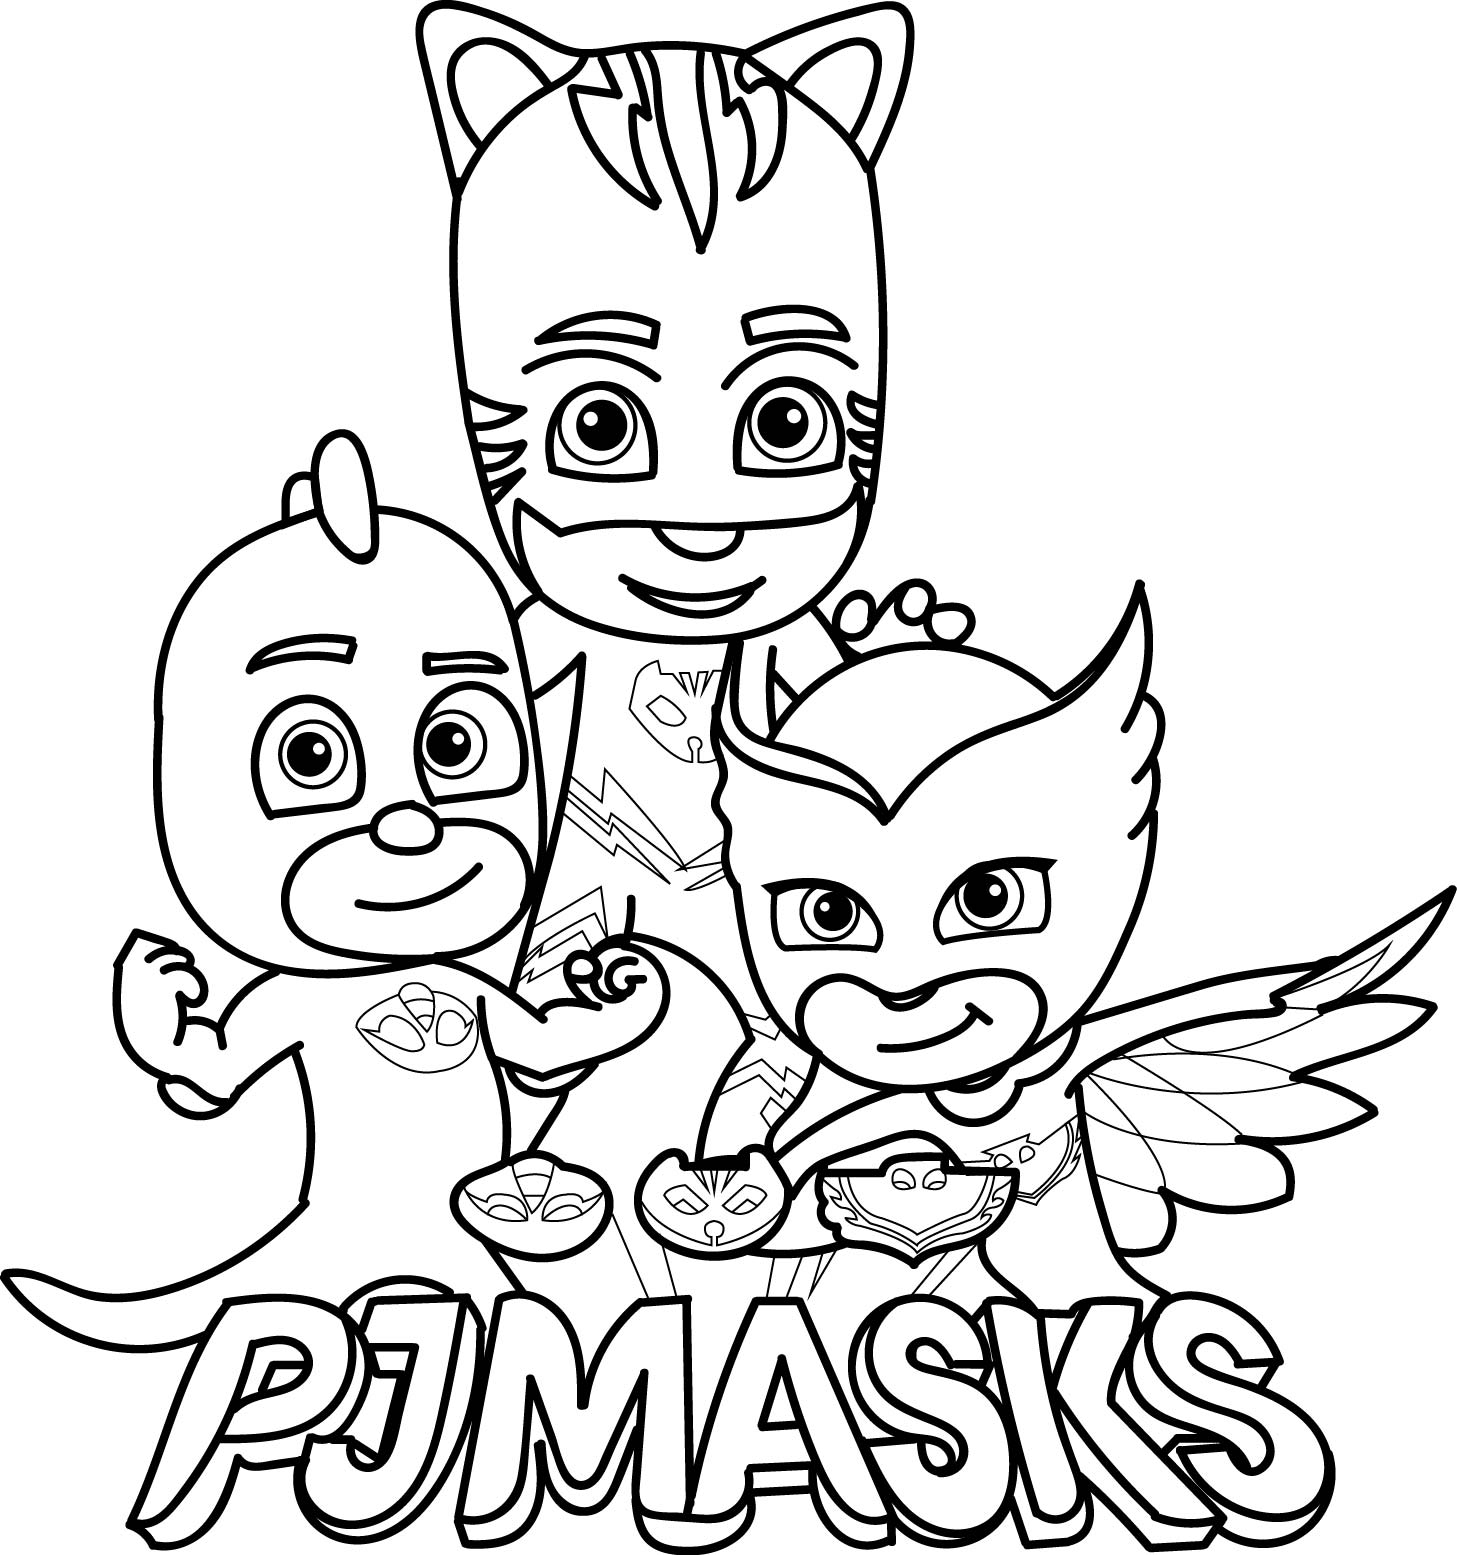 pj masks coloring pages printable PJ Masks Coloring Pages   Best Coloring Pages For Kids pj masks coloring pages printable